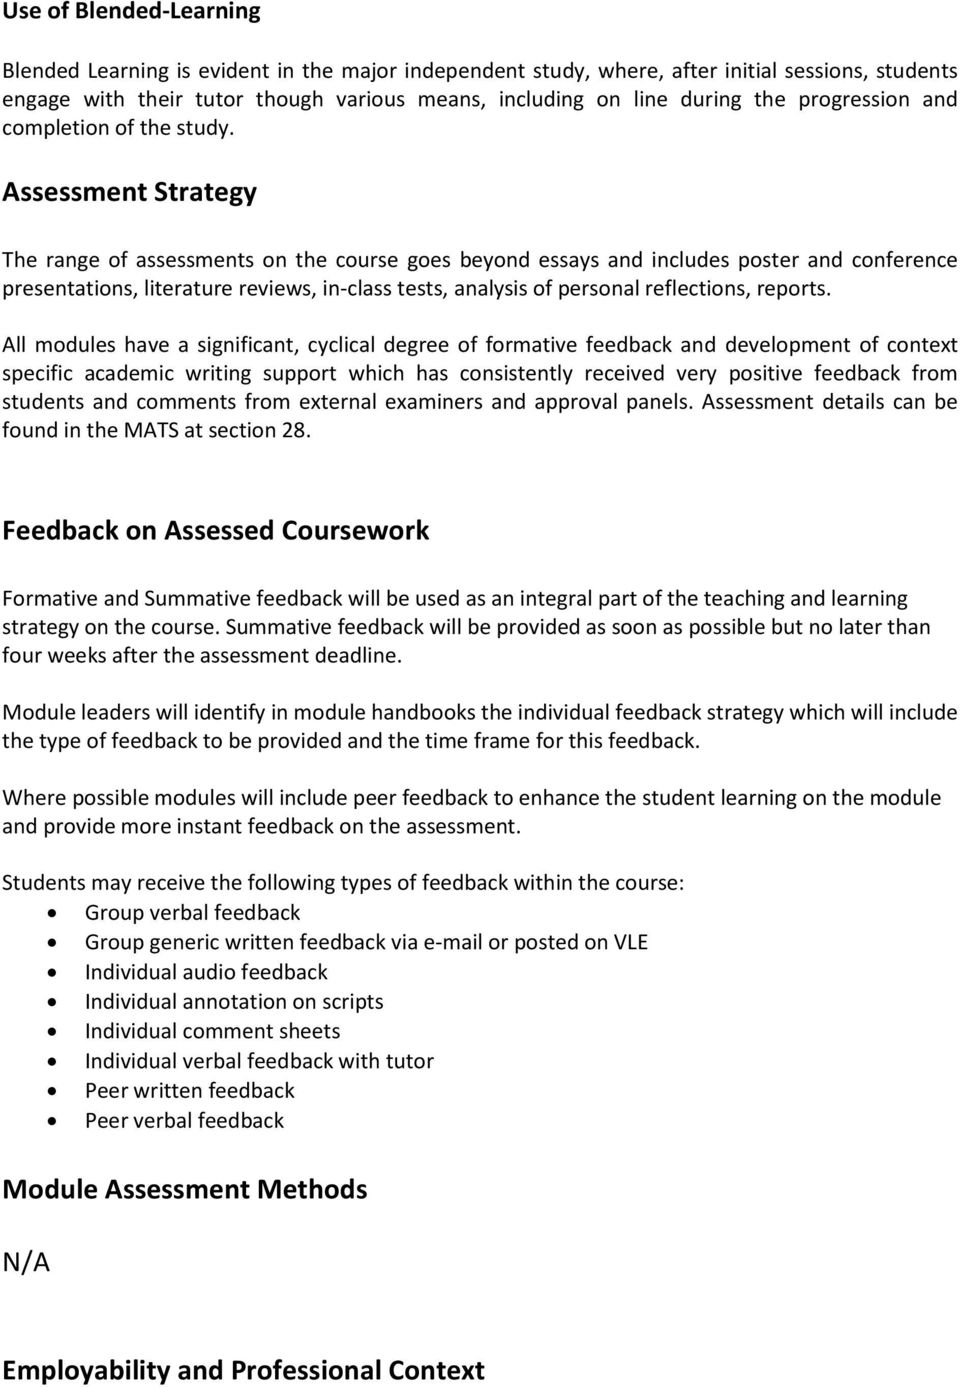 Assessment Strategy The range of assessments on the course goes beyond essays and includes poster and conference presentations, literature reviews, in-class tests, analysis of personal reflections,